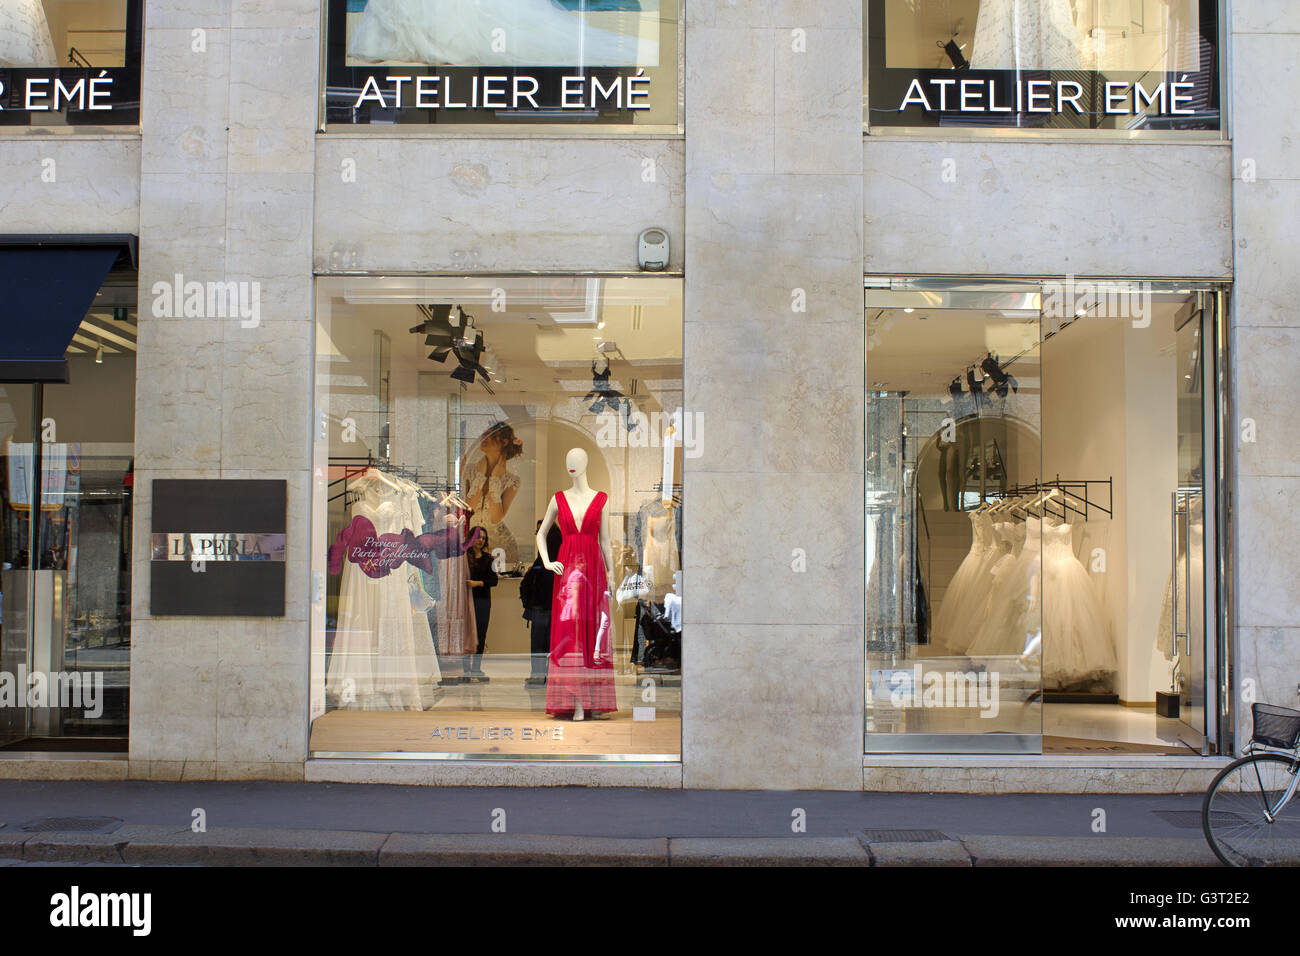 9004ef121a31 Atelier Emé high bridal fashion shopping windows in Milano fashion  district